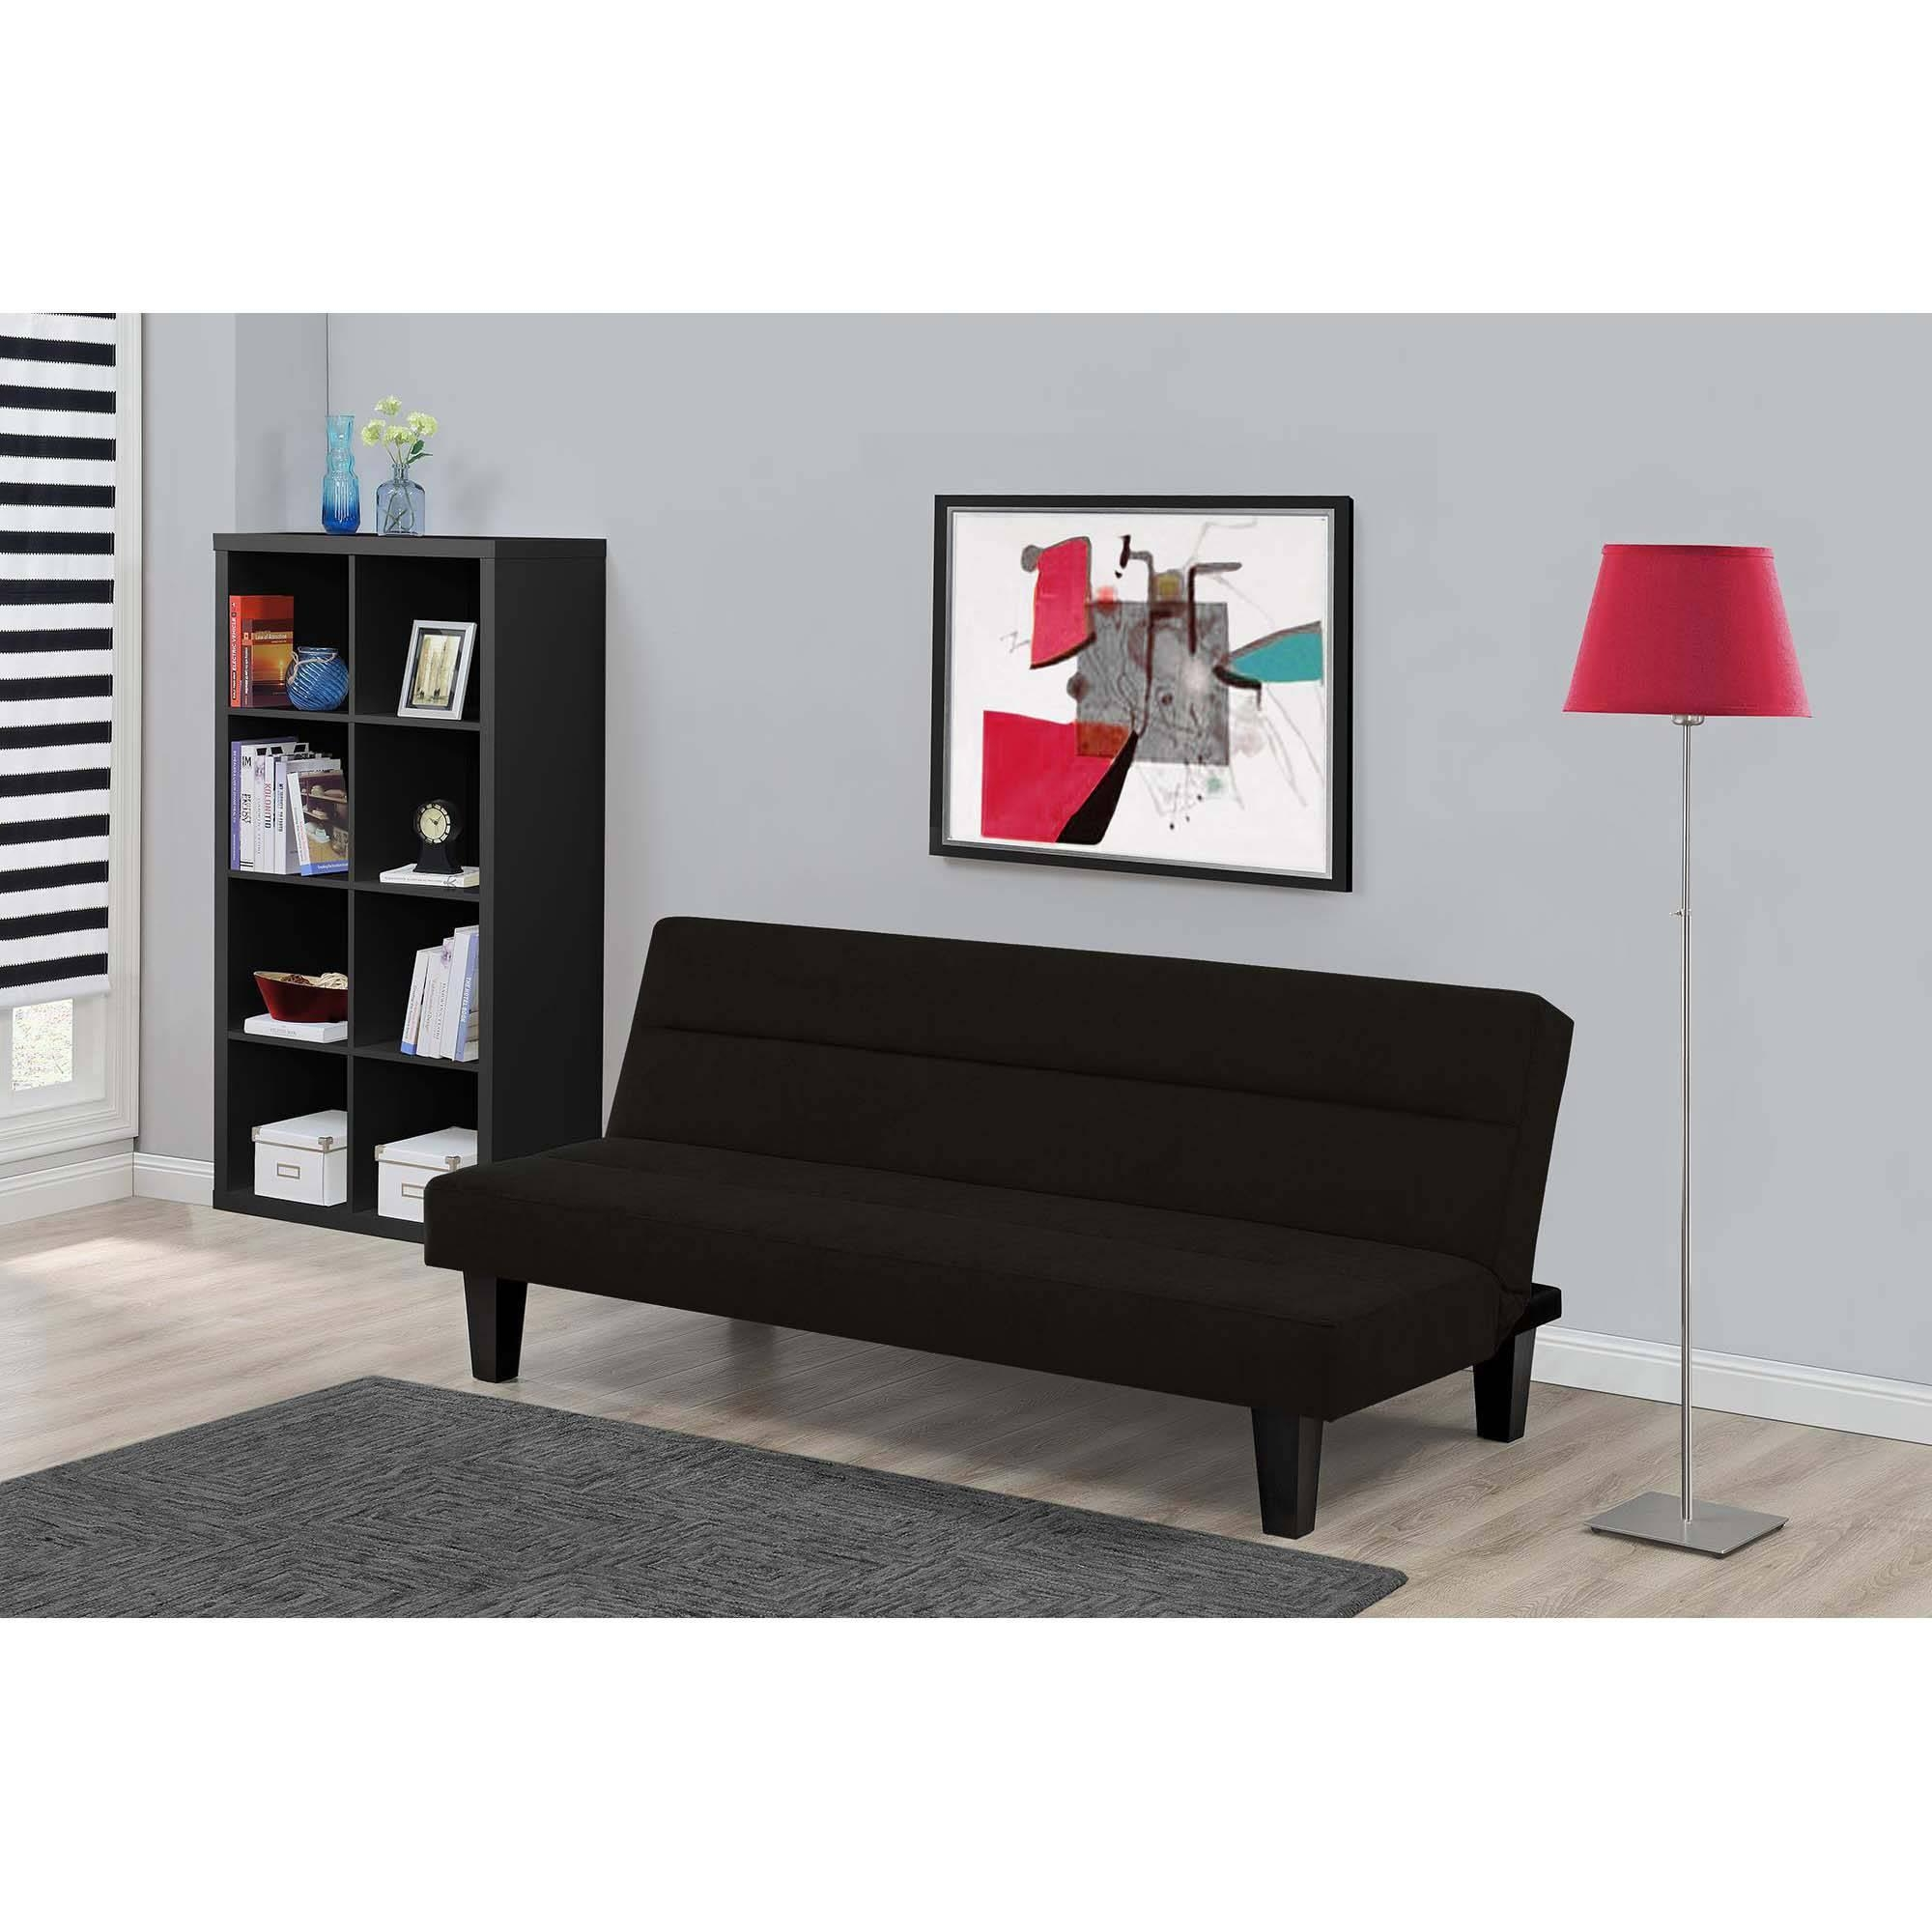 Living Room: Futon Walmart | Walmart Red Futon | Walmart Mainstay Throughout Mainstay Sofas (Image 3 of 20)